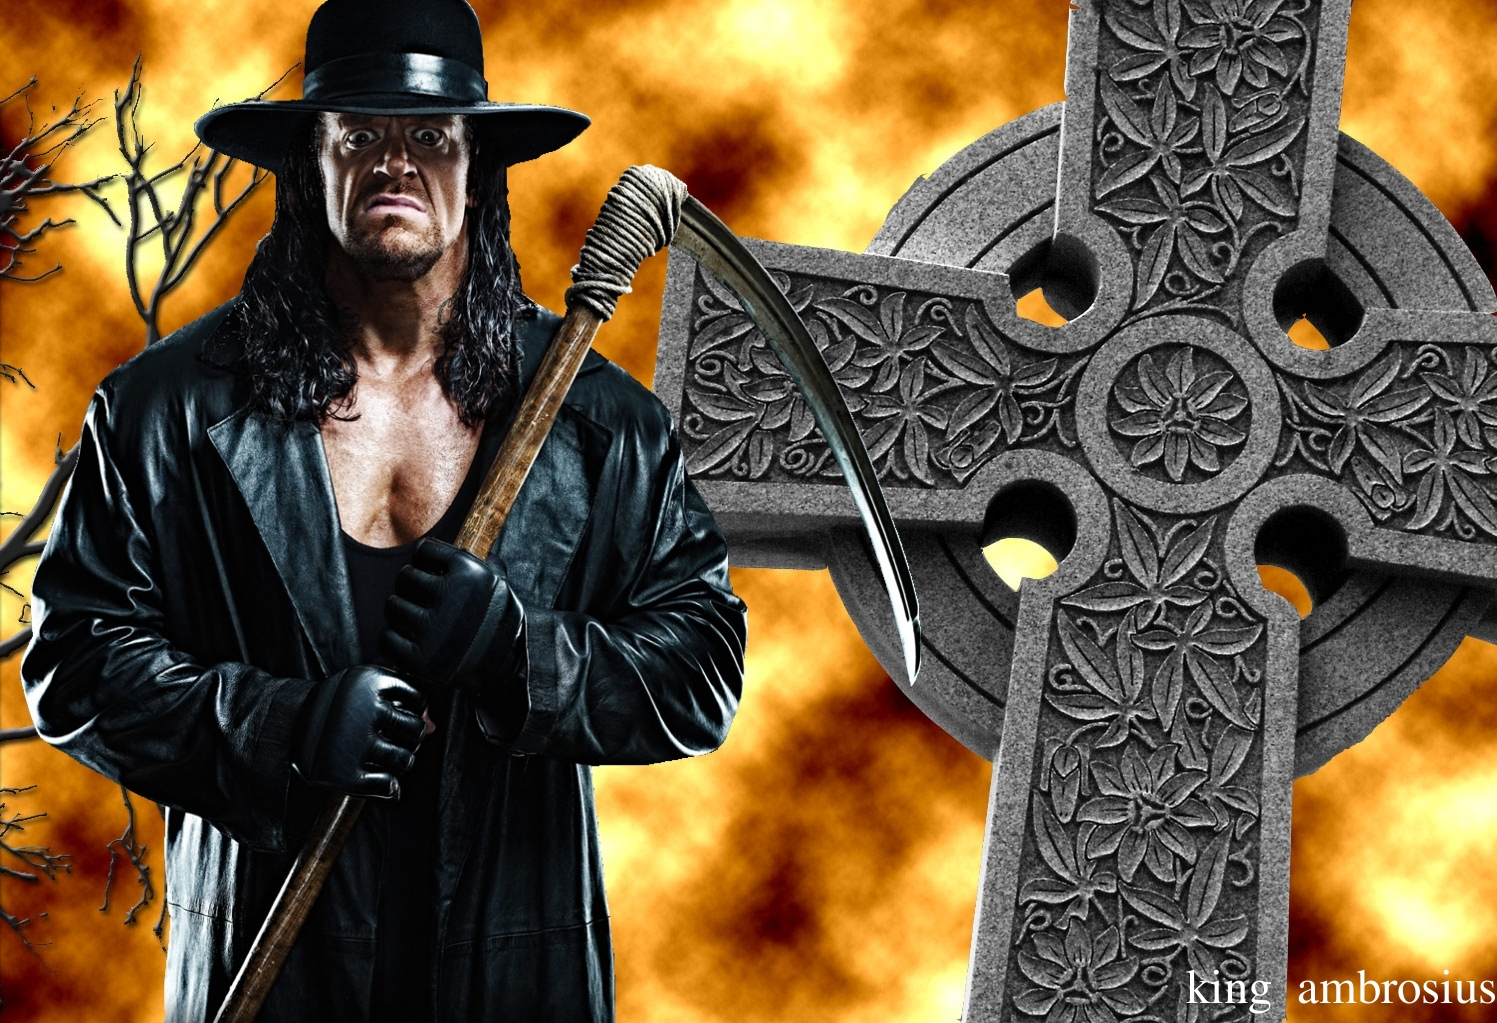 http://2.bp.blogspot.com/-GsVJ0M0AzoE/UP8n2_d1H8I/AAAAAAAAA6Q/u1eWT8YIyHI/s1600/The+Undertaker+HD+Wallpaper_.jpg